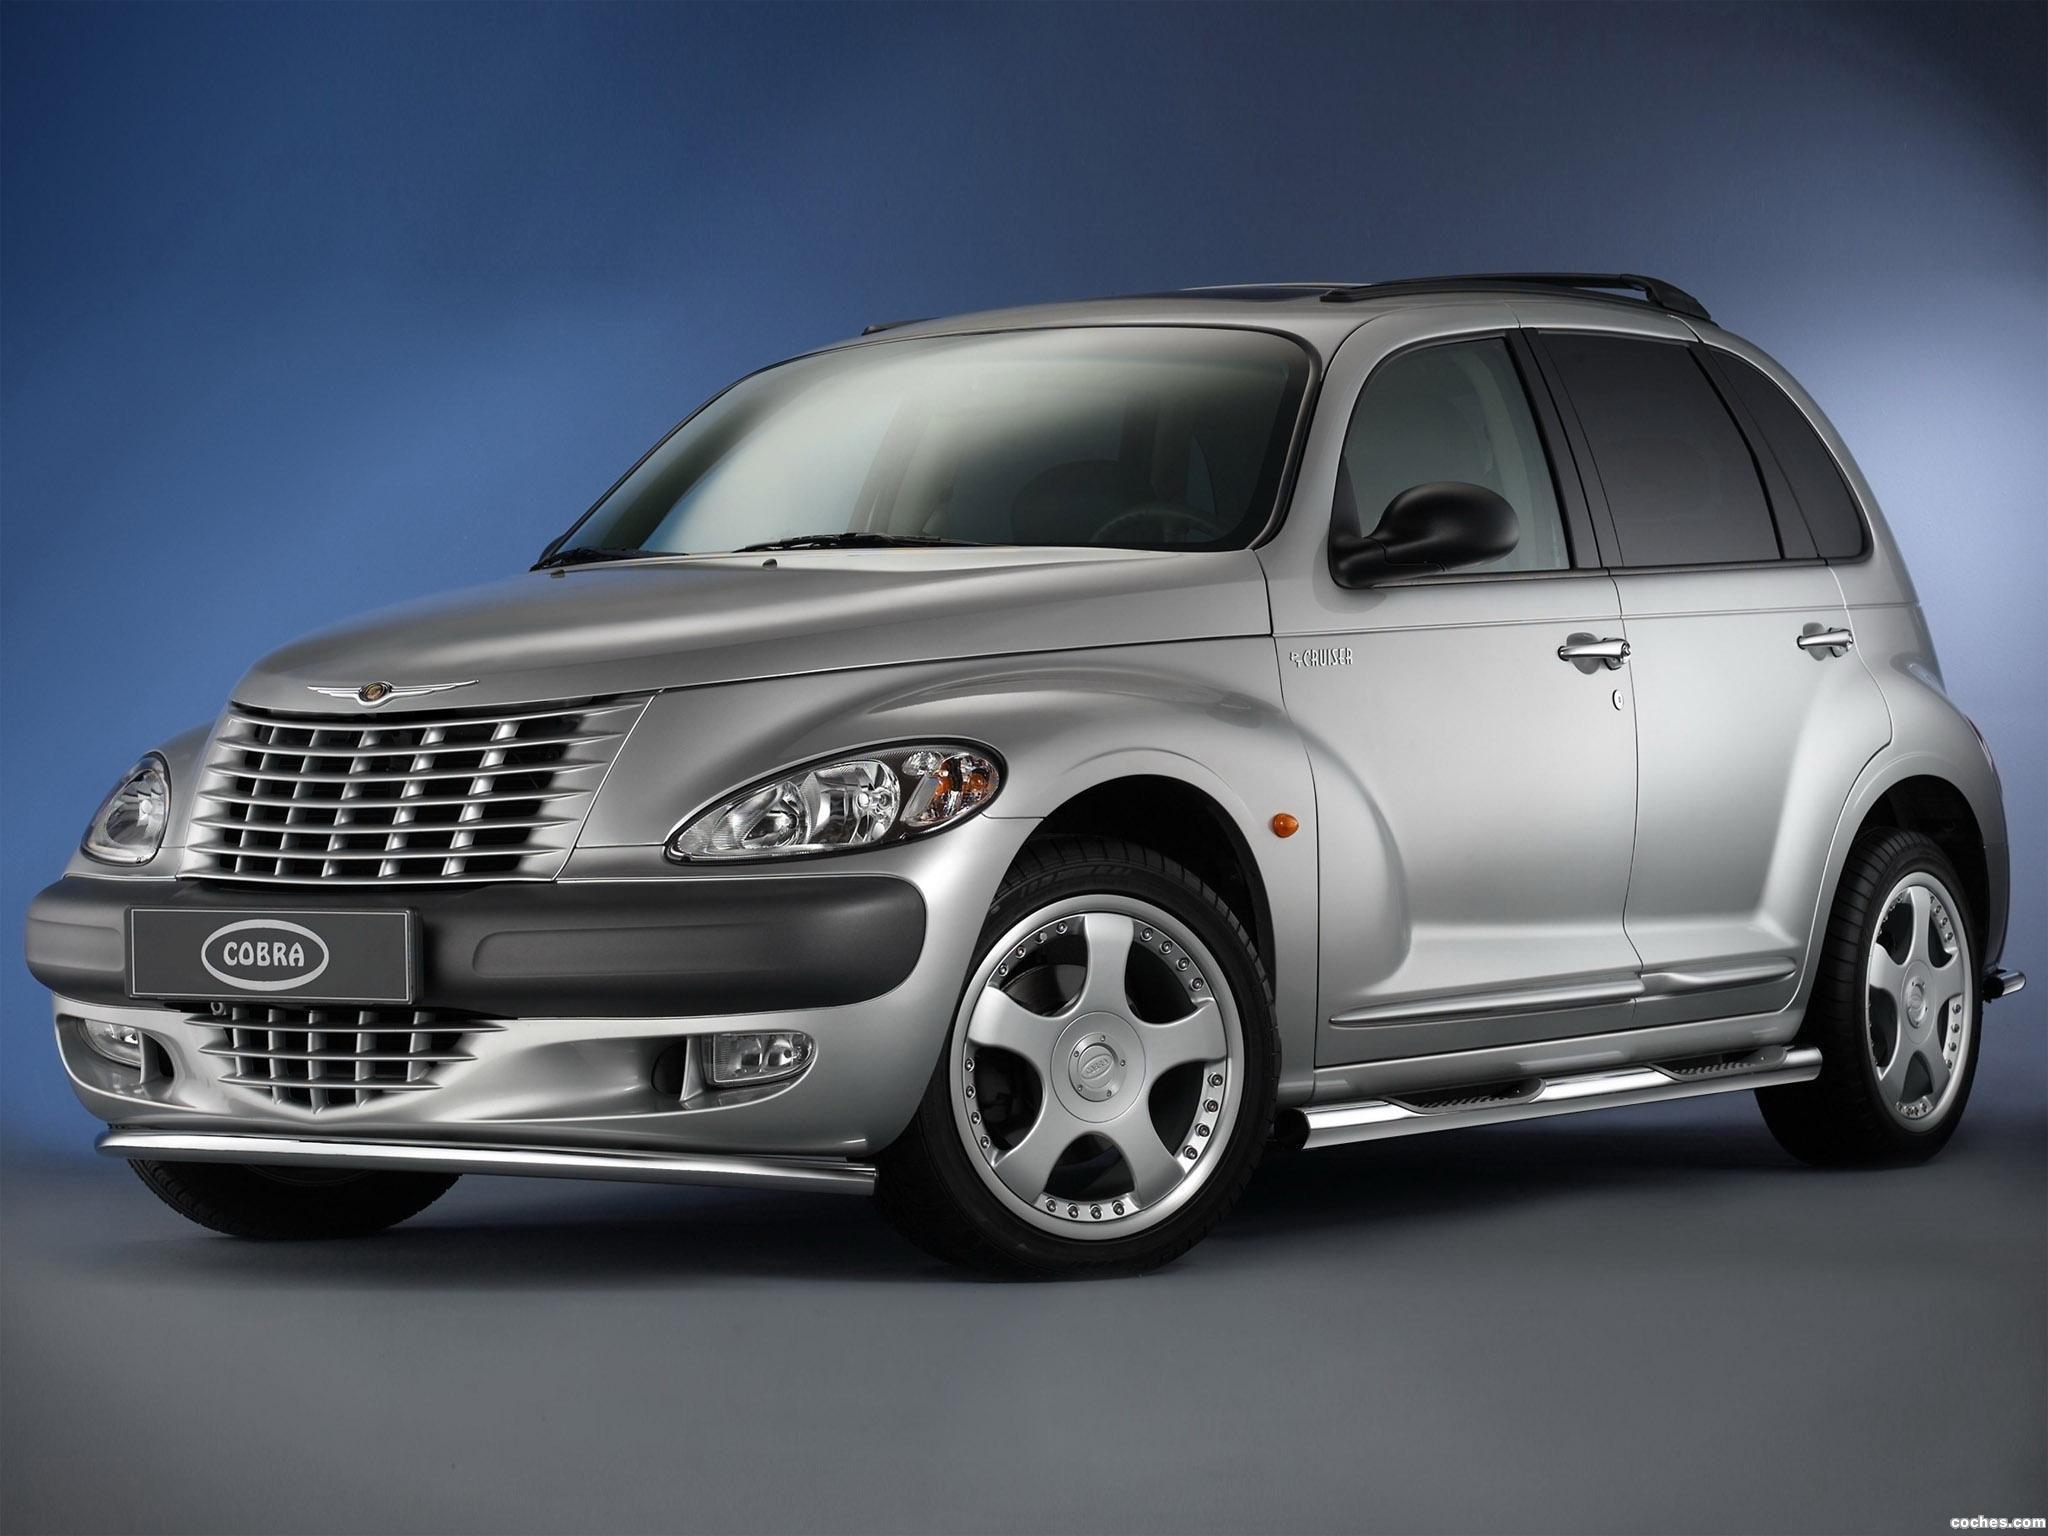 Foto 0 de Cobra Chrysler PT Cruiser 2001